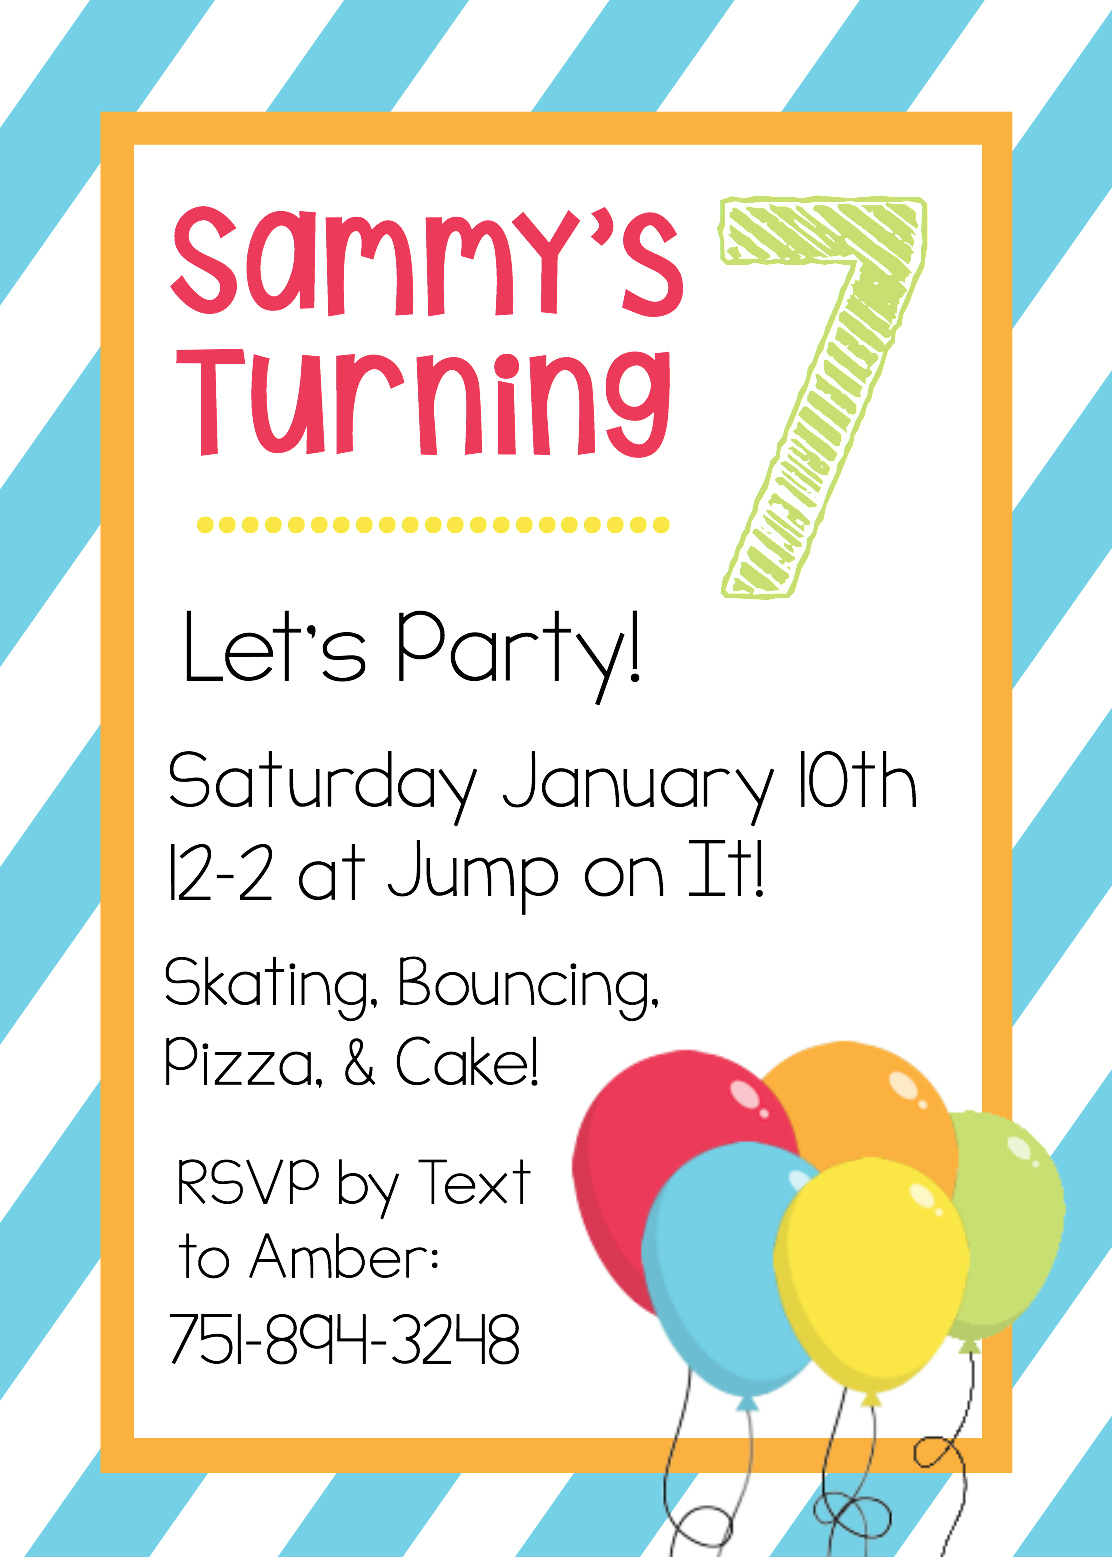 photograph relating to Printable Party Invite referred to as No cost Printable Birthday Invitation Templates